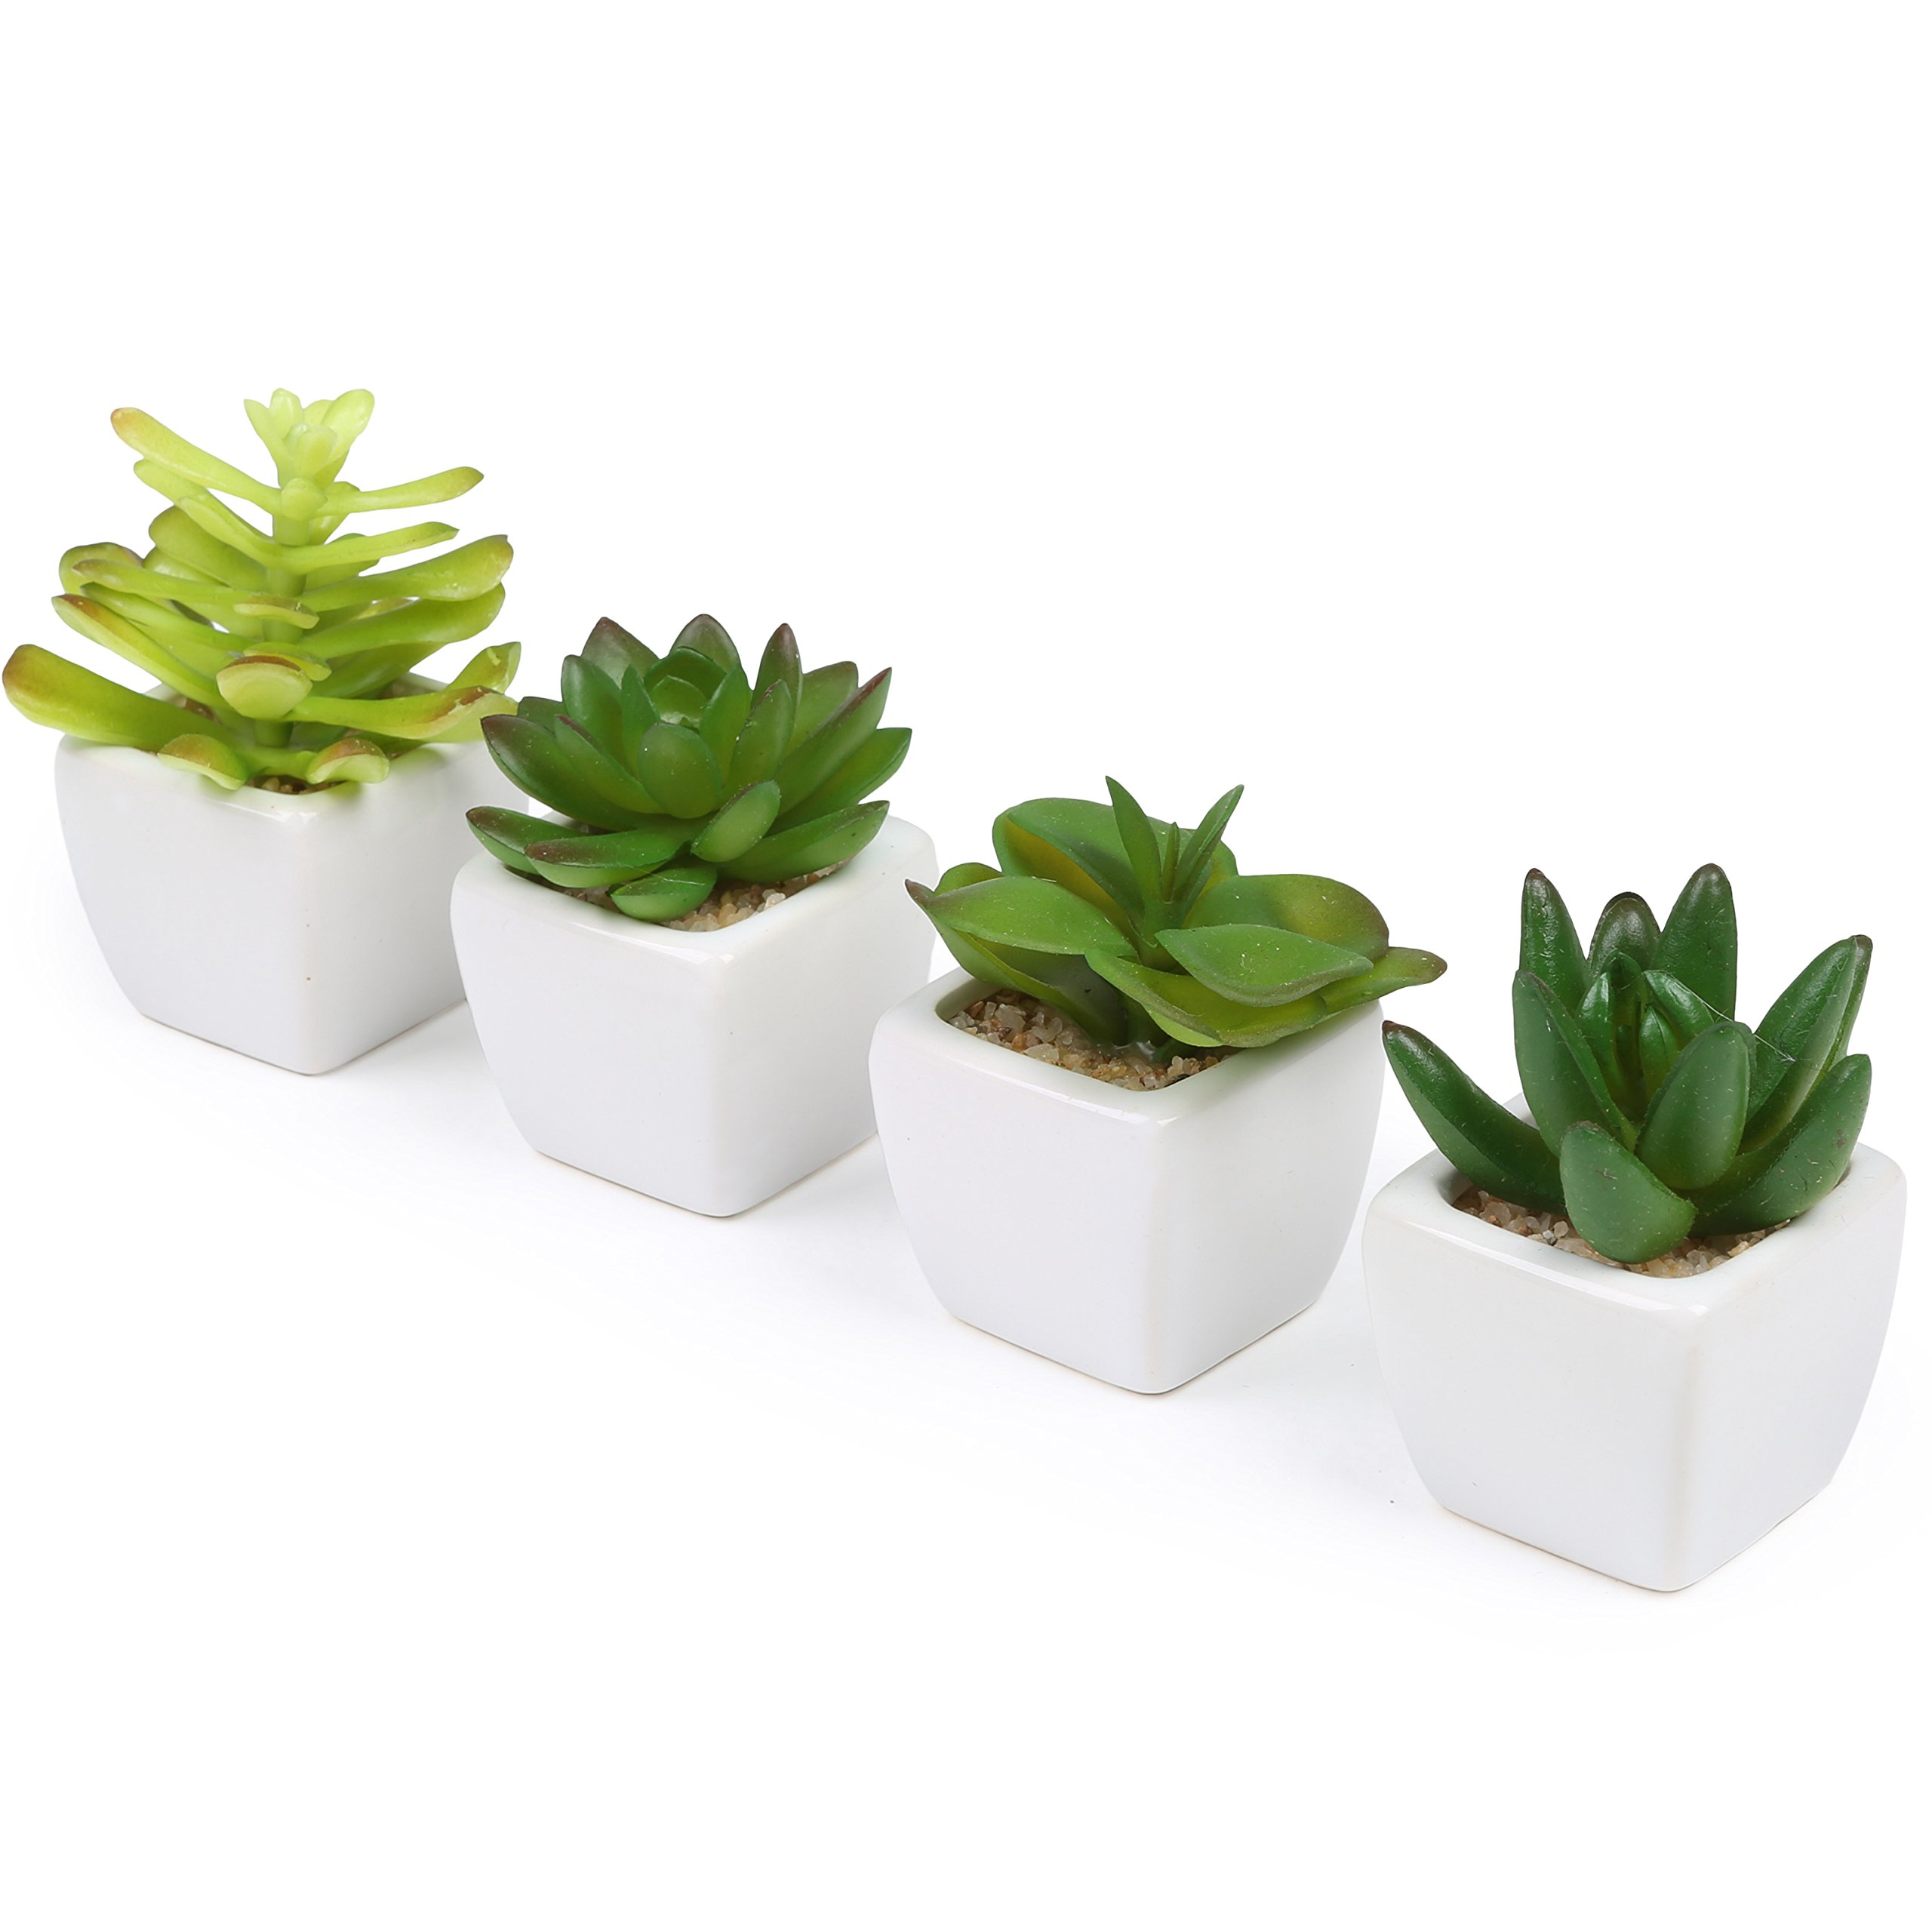 Set of 4 Decorative Mini Artificial Succulents / Plastic Synthetic Plants with White Ceramic Planter Pots